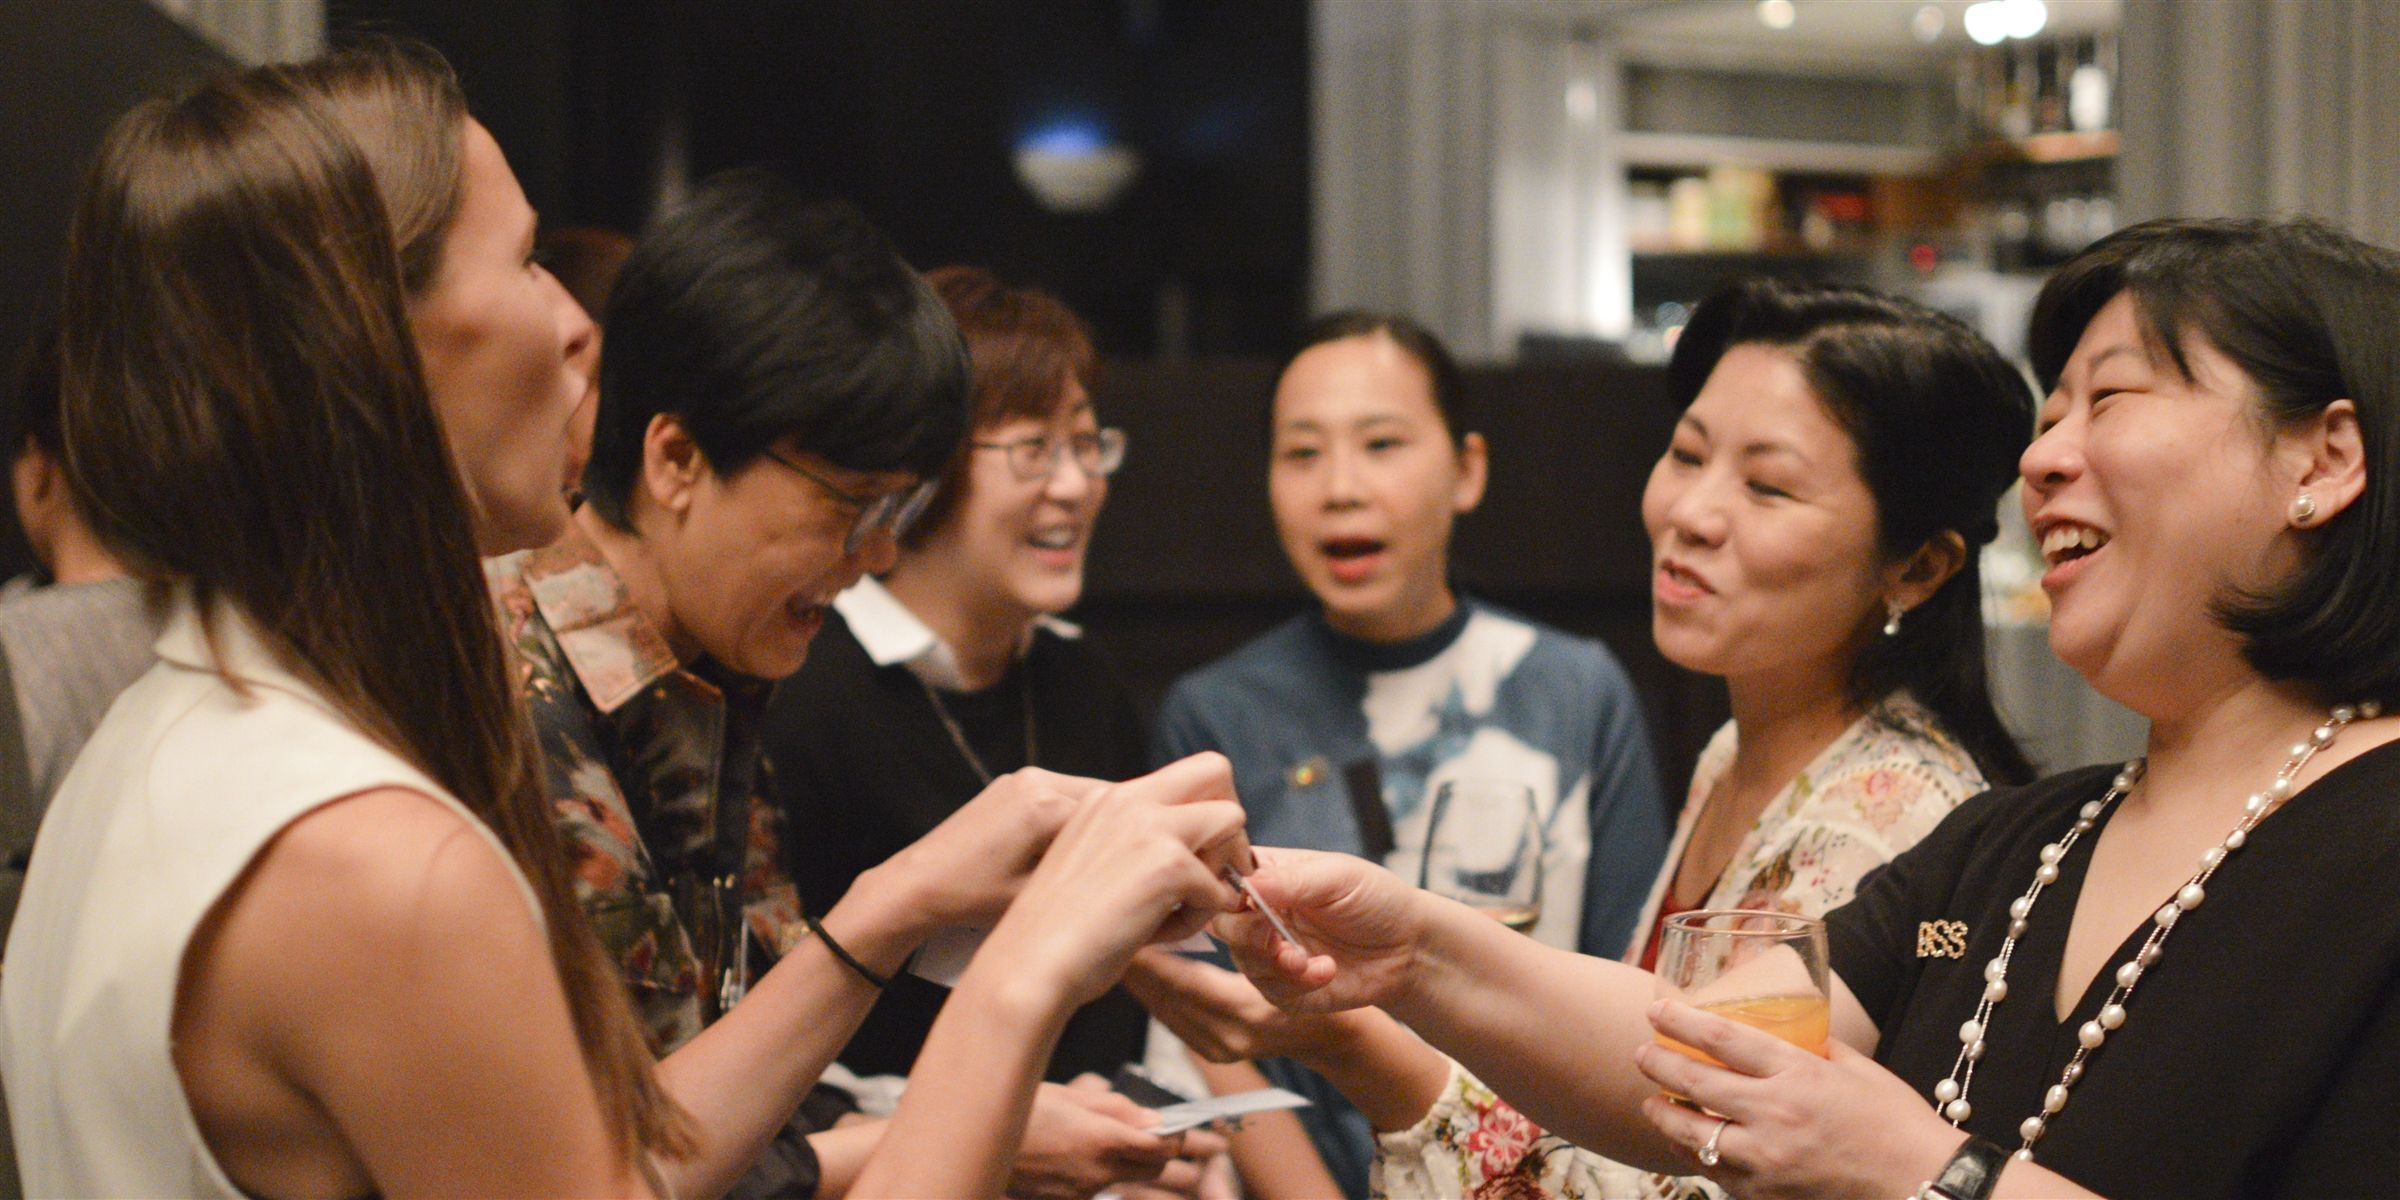 A group of alumnae talk at an event in Hong Kong